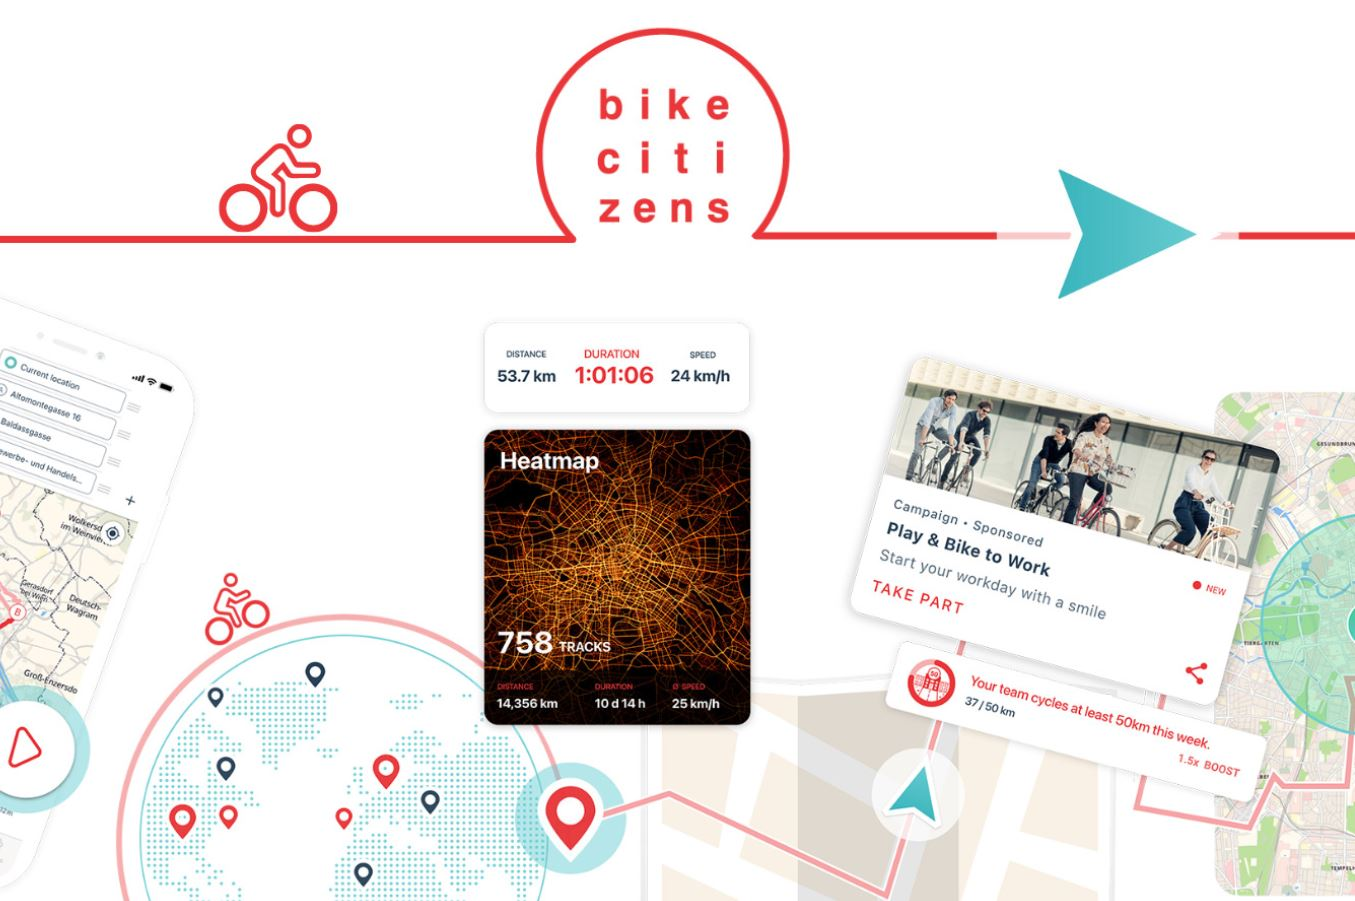 German Bicycle Award and the new Bike Citizens App